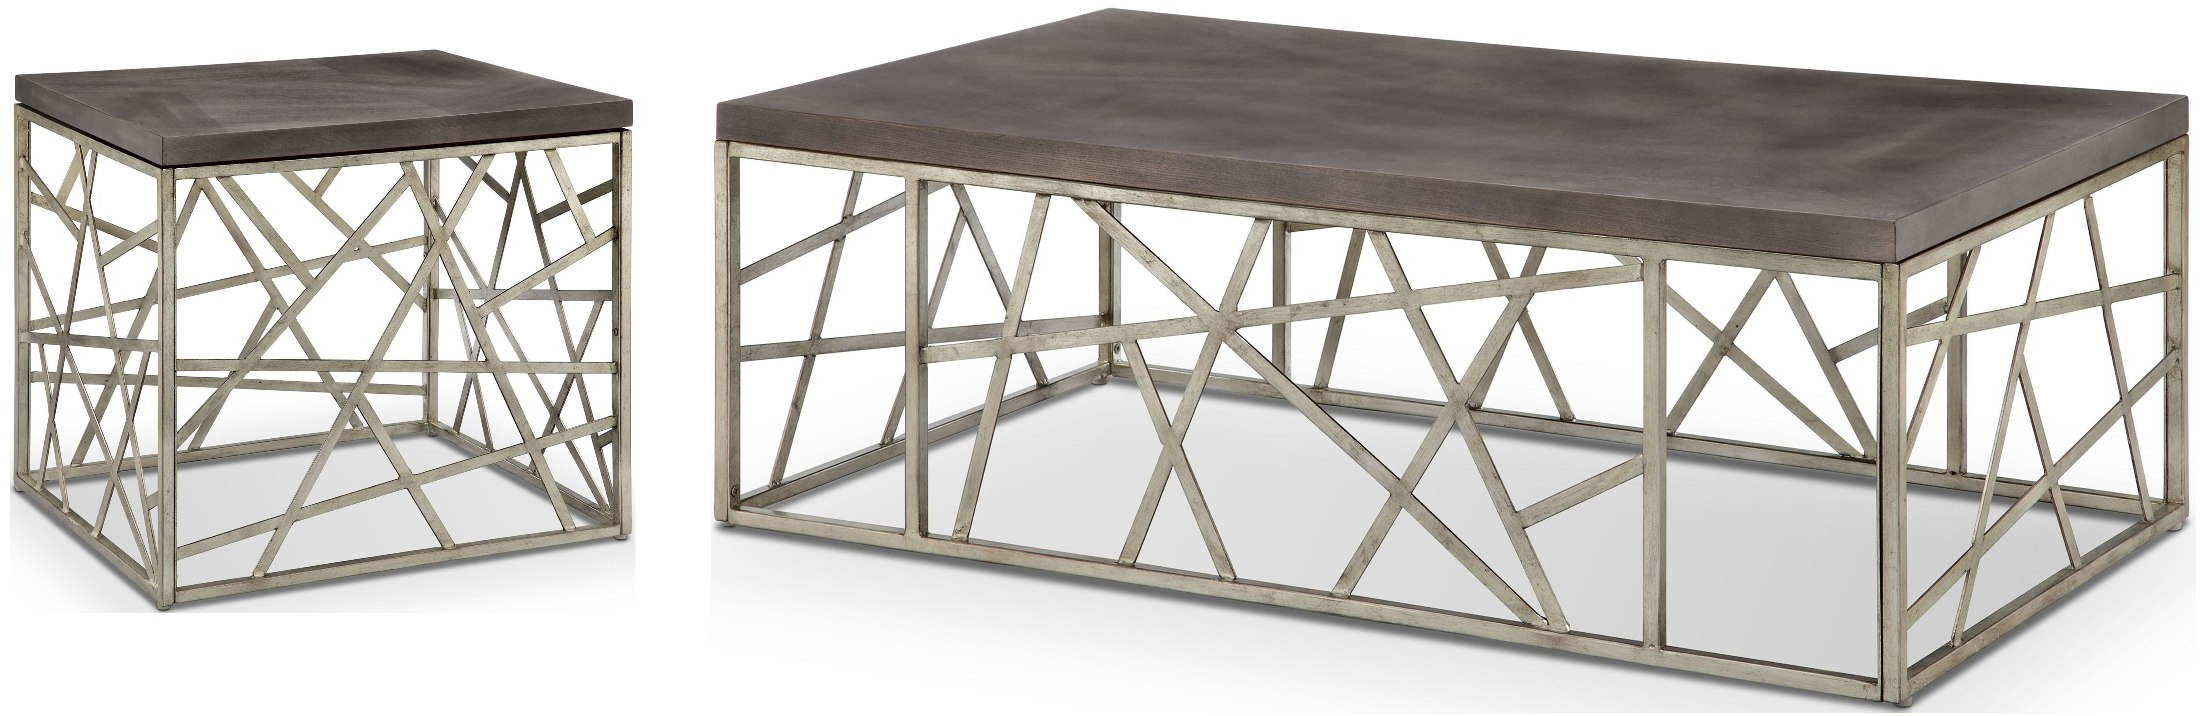 Most Popular Tribeca Contemporary Distressed Silver And Smoke Grey Coffee Tables In Tribeca Distressed Silver And Smoke Grey Occasional Table Set (View 9 of 20)